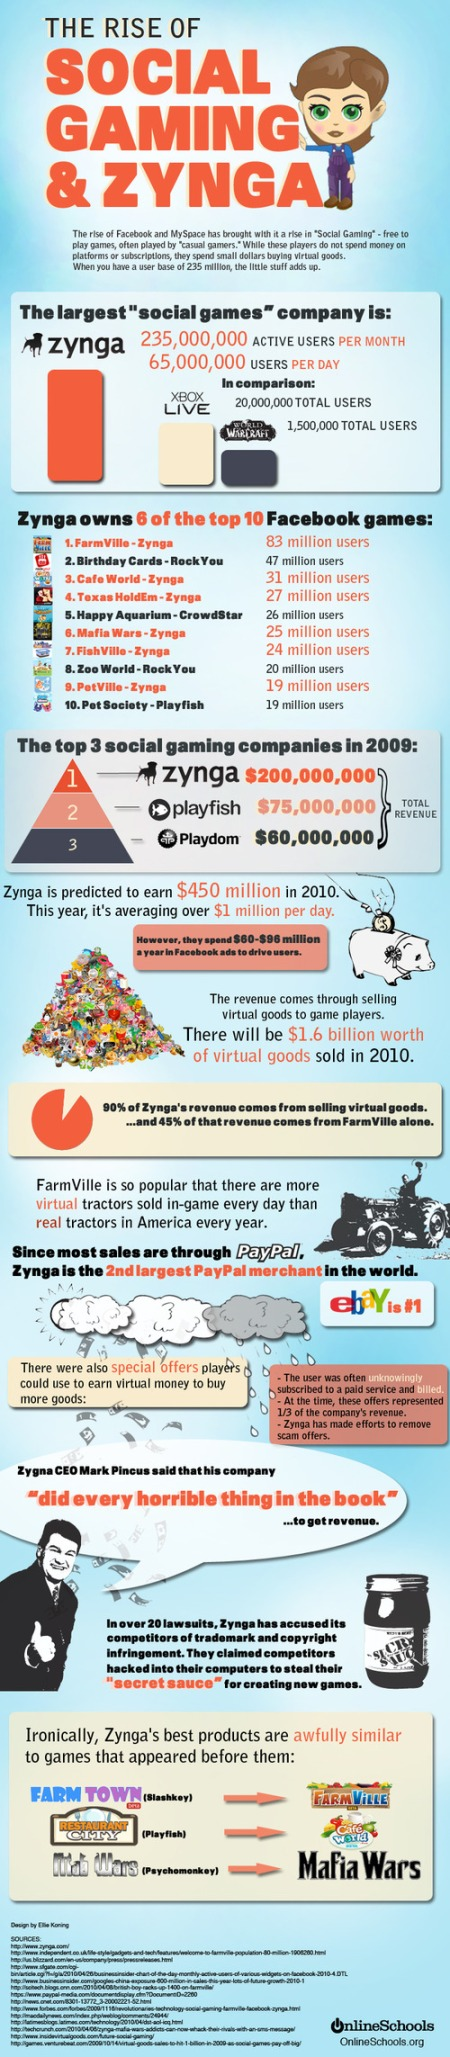 Rise of Social Gaming and Zynga